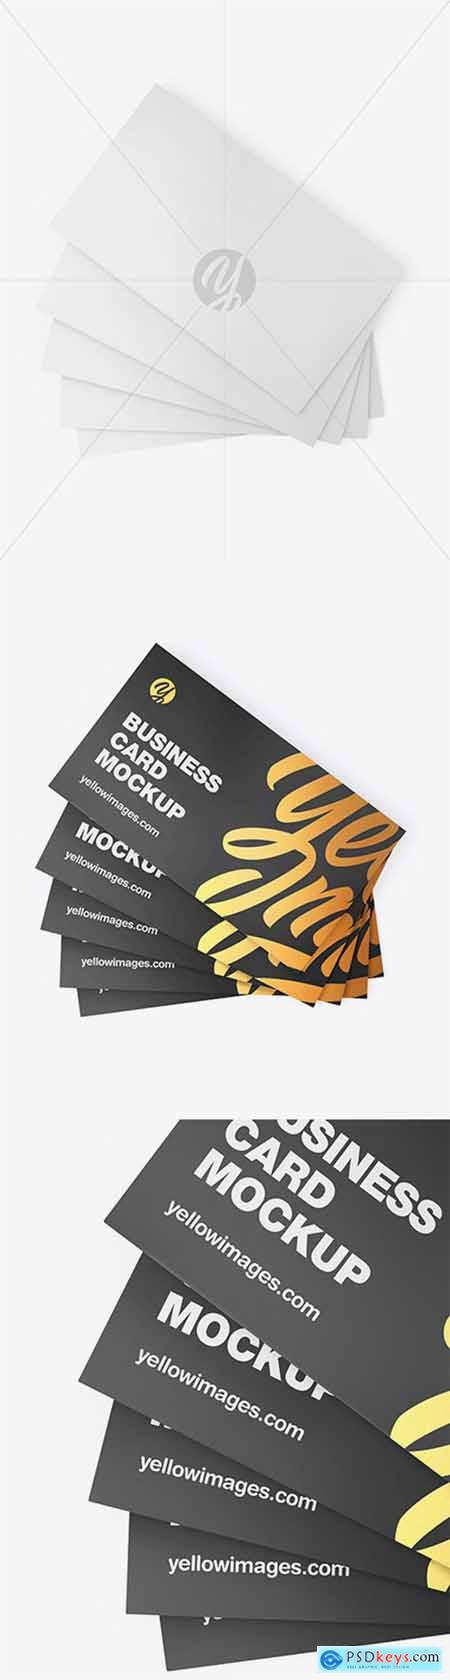 Download Mockup Business Card Psd Free Download Yellowimages